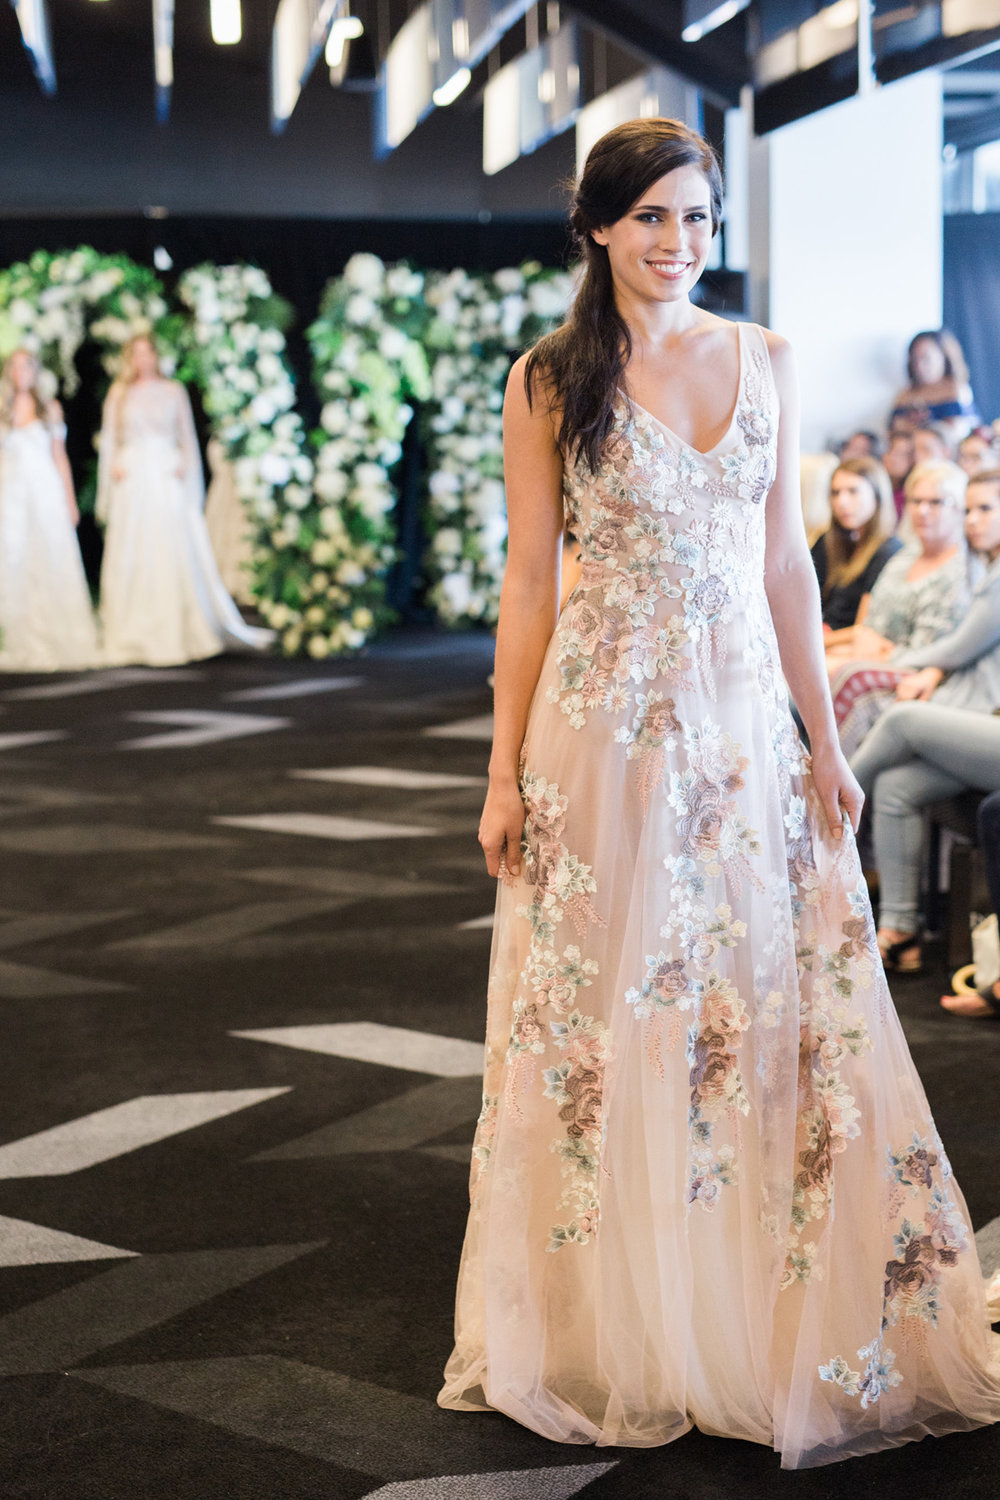 Love-Wedding-Festival-Sydney-Wedding-Gown-Angela-Osagie-27.jpg